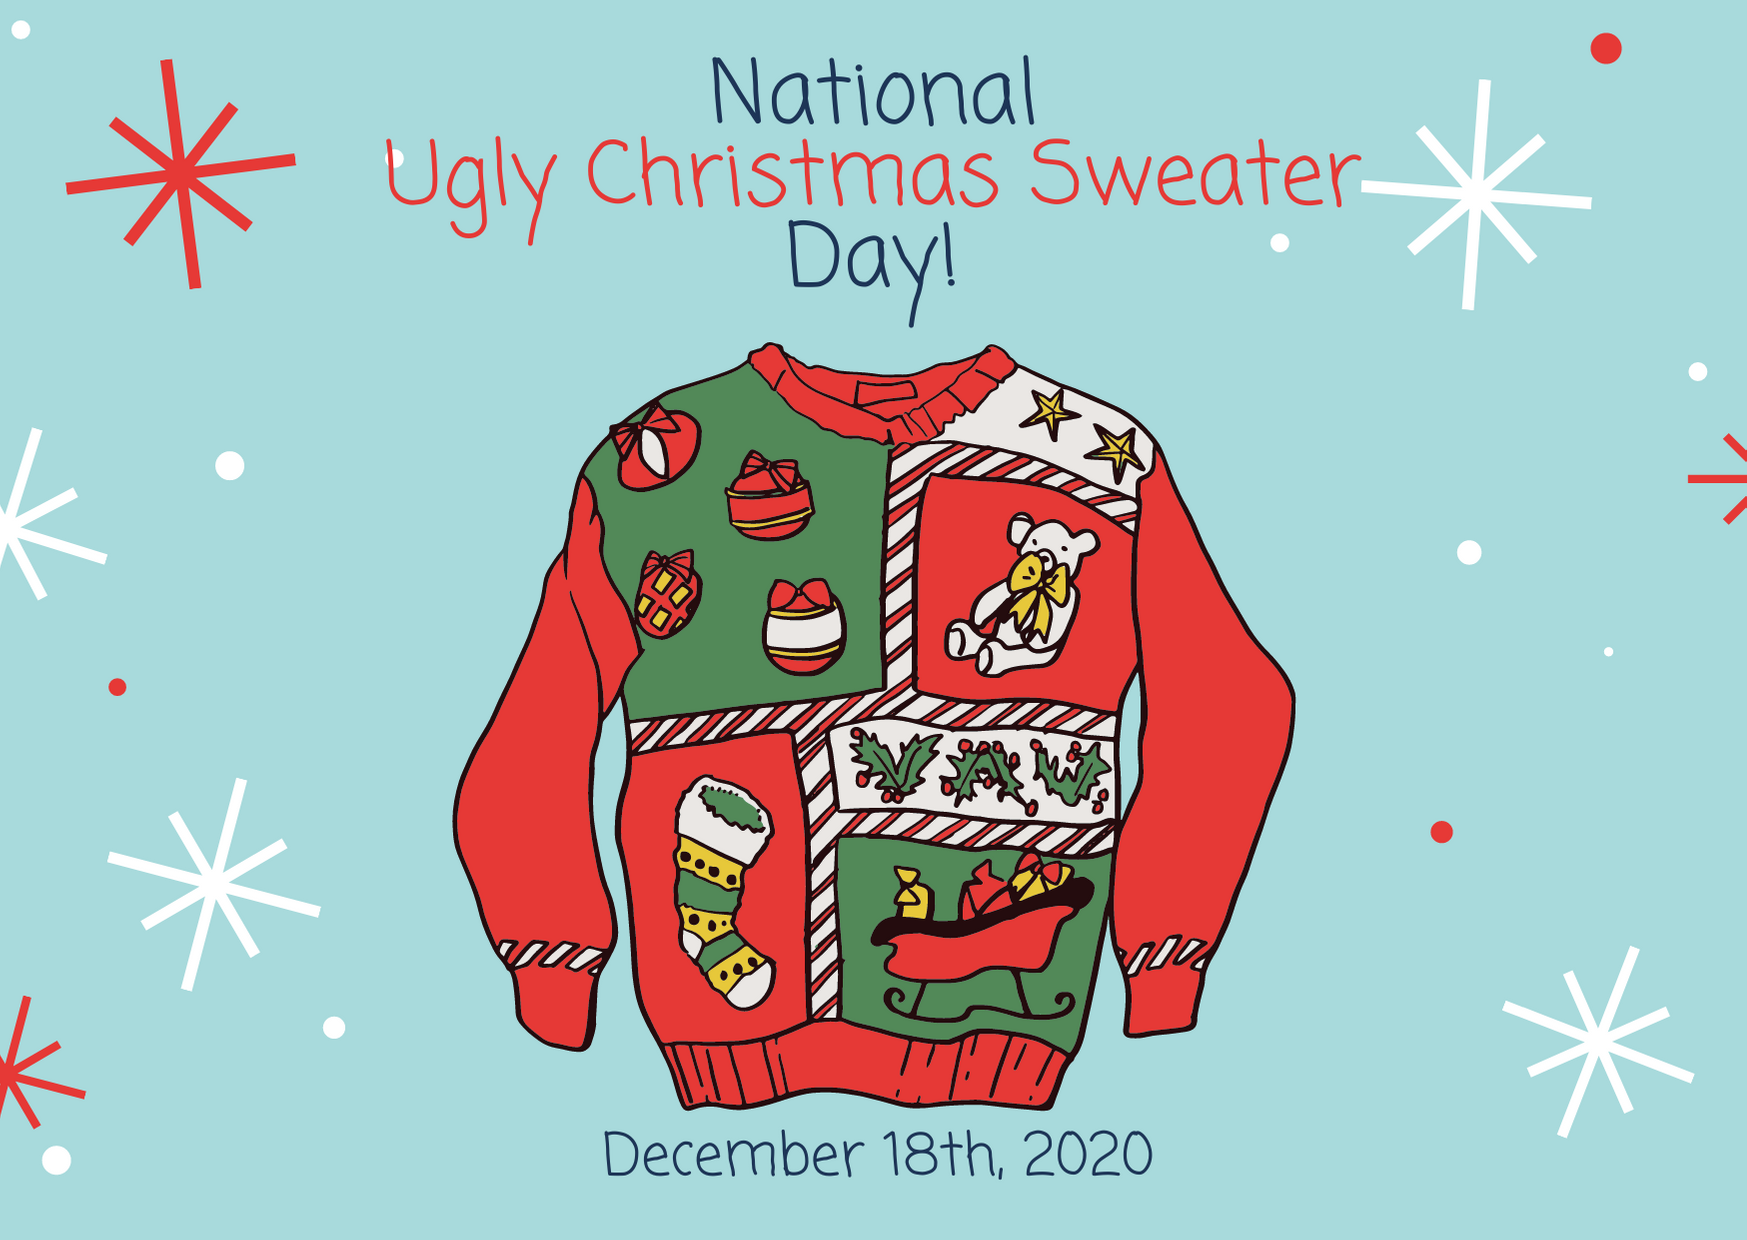 National Ugly Christmas Sweater Day 2020